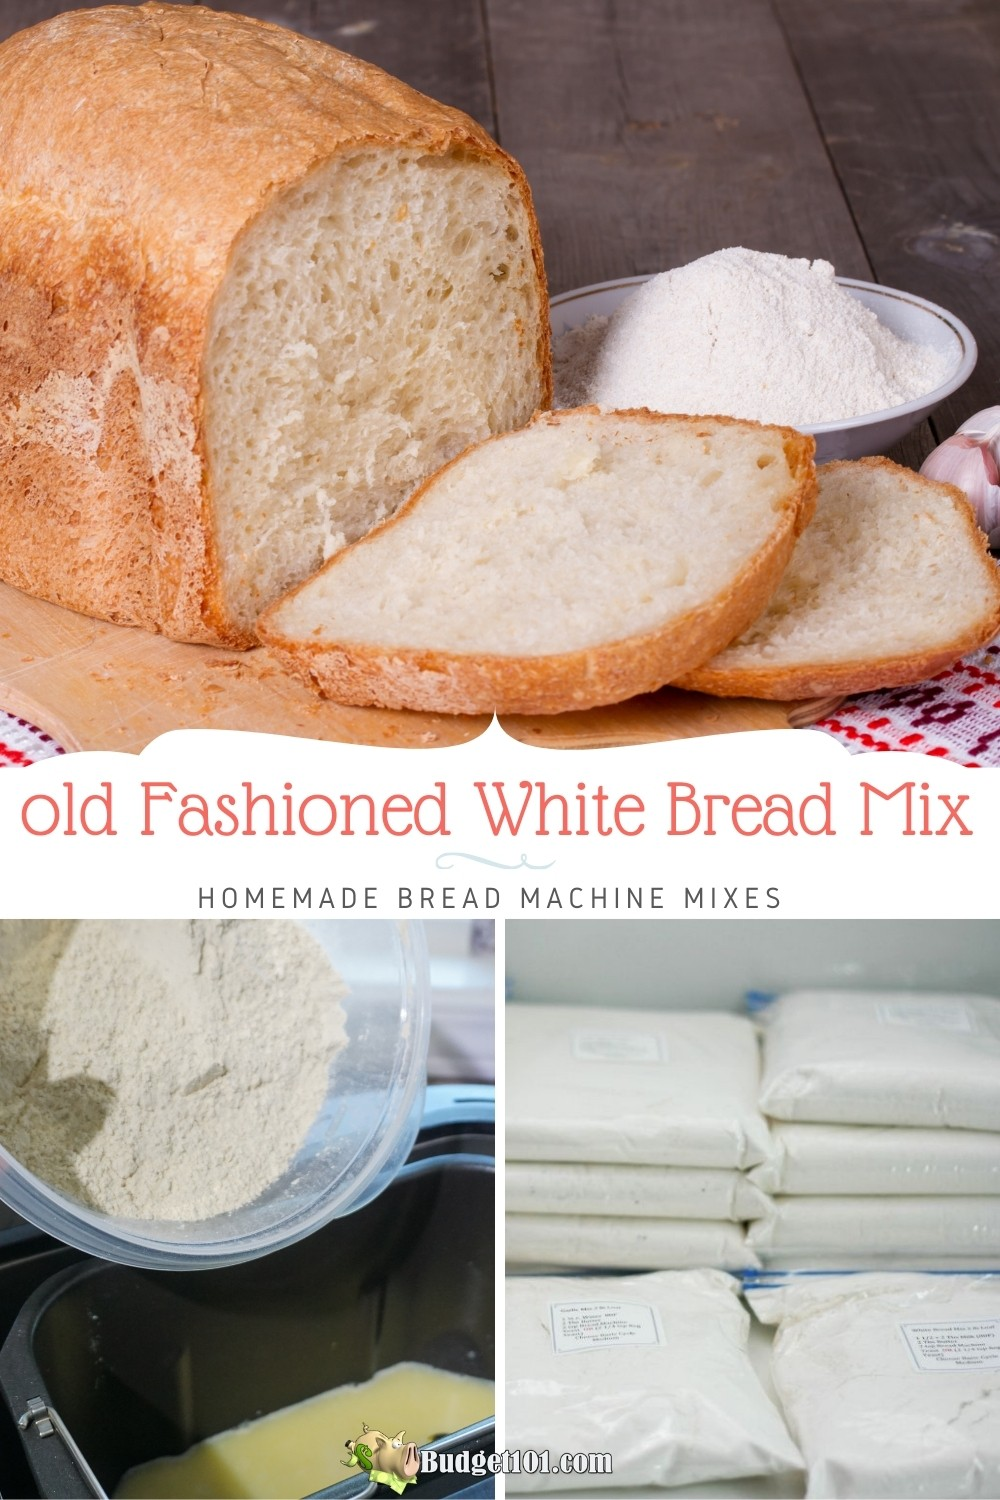 Make your own Old fashioned White Bread mix for Bread Machines- this delicious, simple recipe makes creating homemade bread a breeze. #BreadMixes #breadmachine #fromscratch #budget101